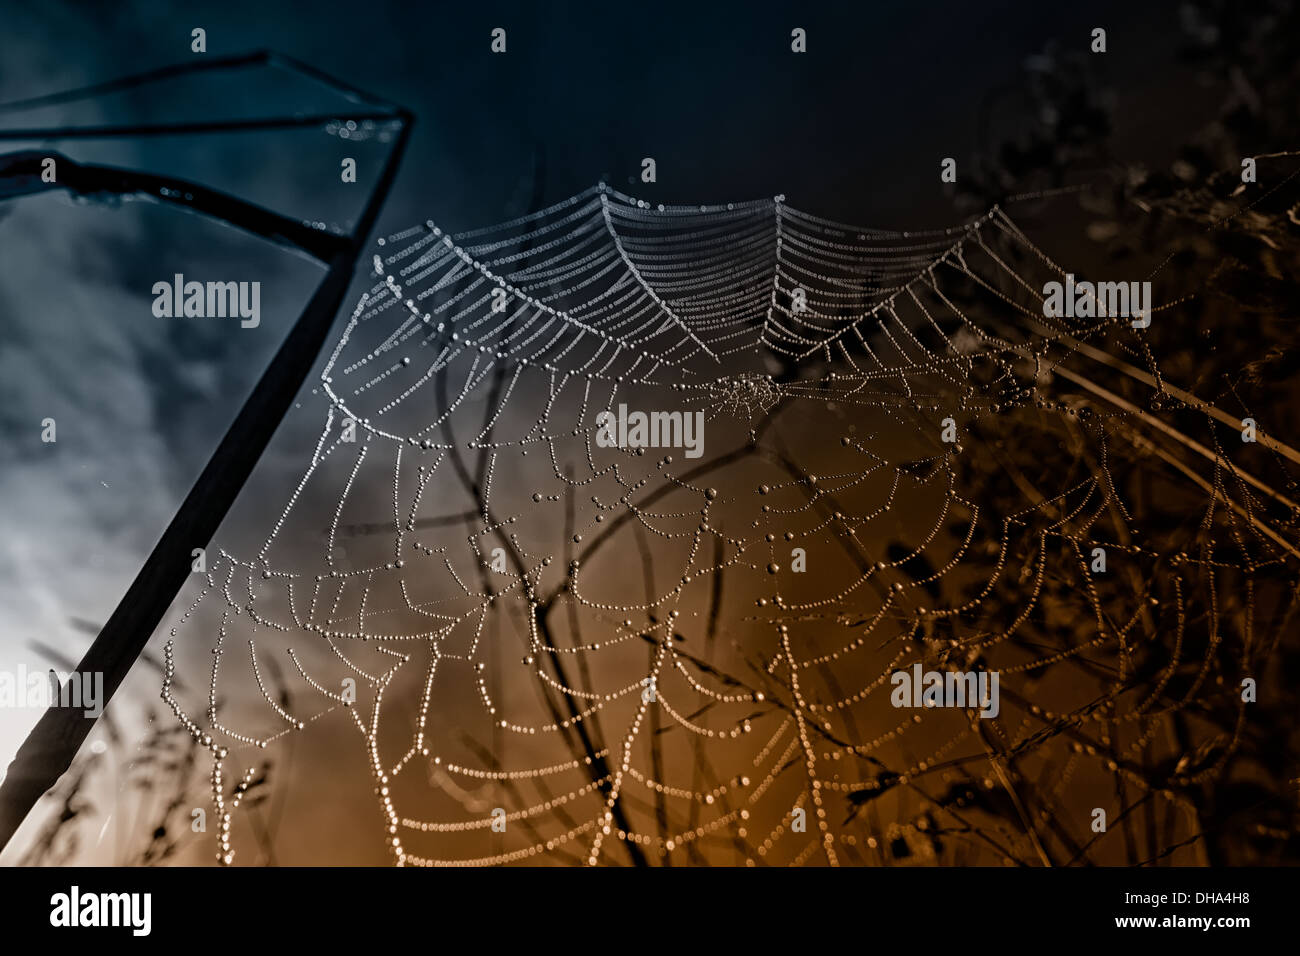 Spider web with dew dampened the early morning. In the background a blue and orange colored sky with clouds. Stock Photo